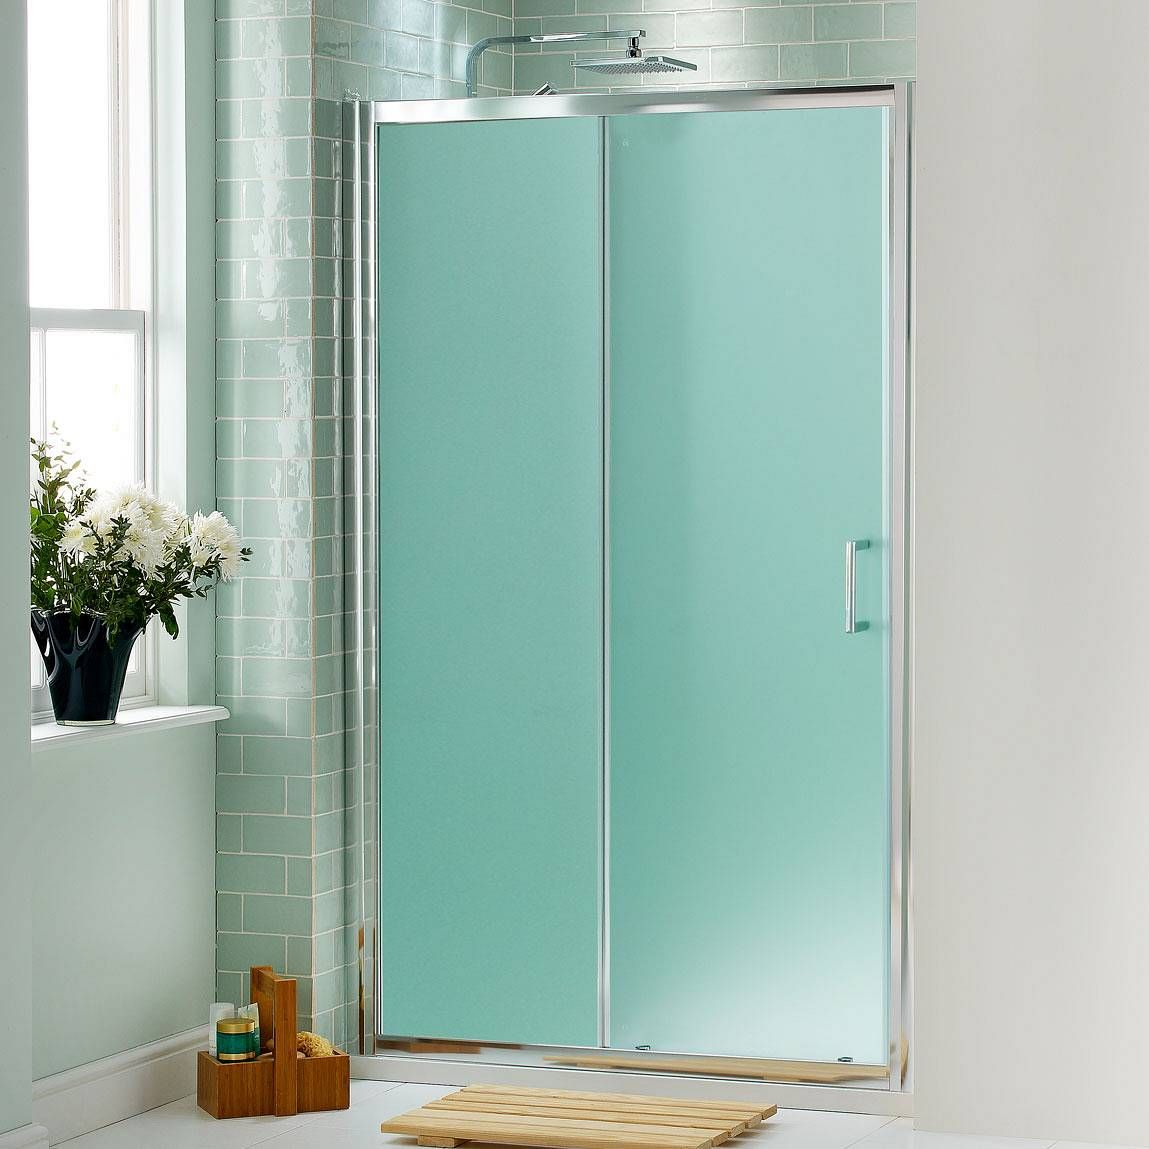 V6 Frosted Glass Sliding Shower Door 1200 Now 99 99 Less Than Half Price Shower Doors Frosted Shower Doors Shower Door Designs